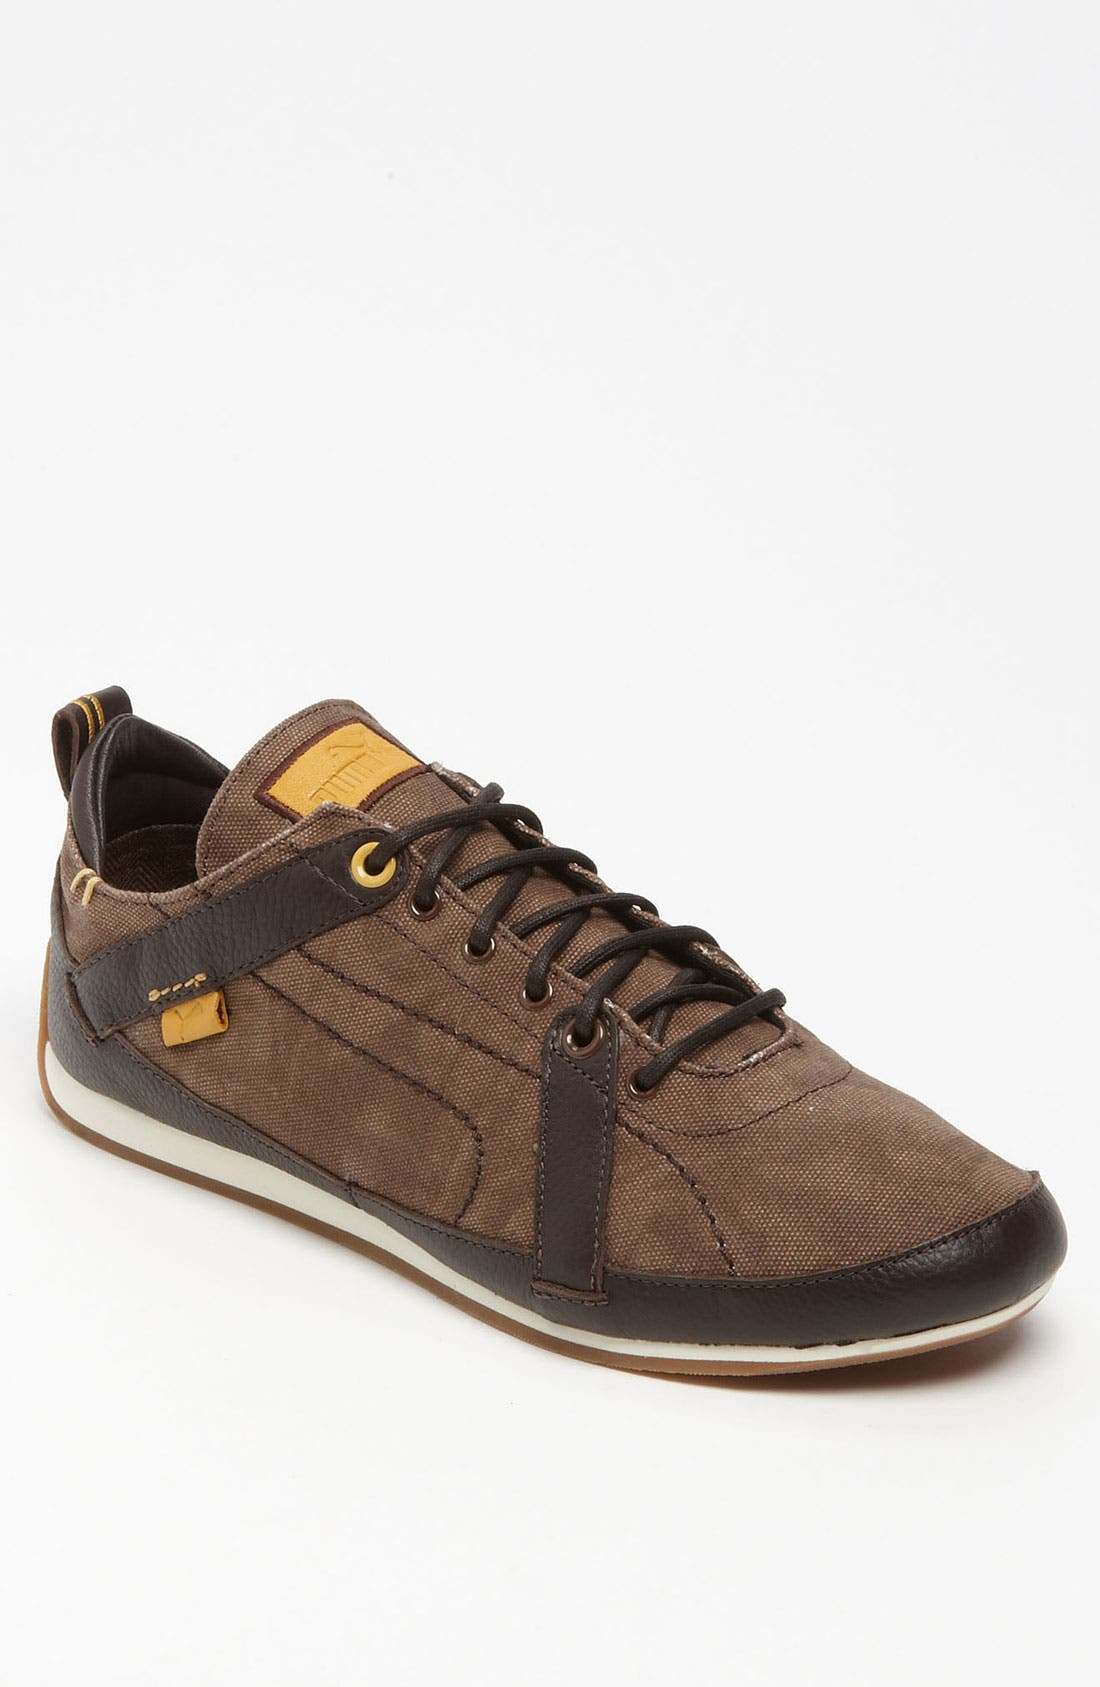 Alternate Image 1 Selected - PUMA 'Vettura Classico - Low' Sneaker (Men)